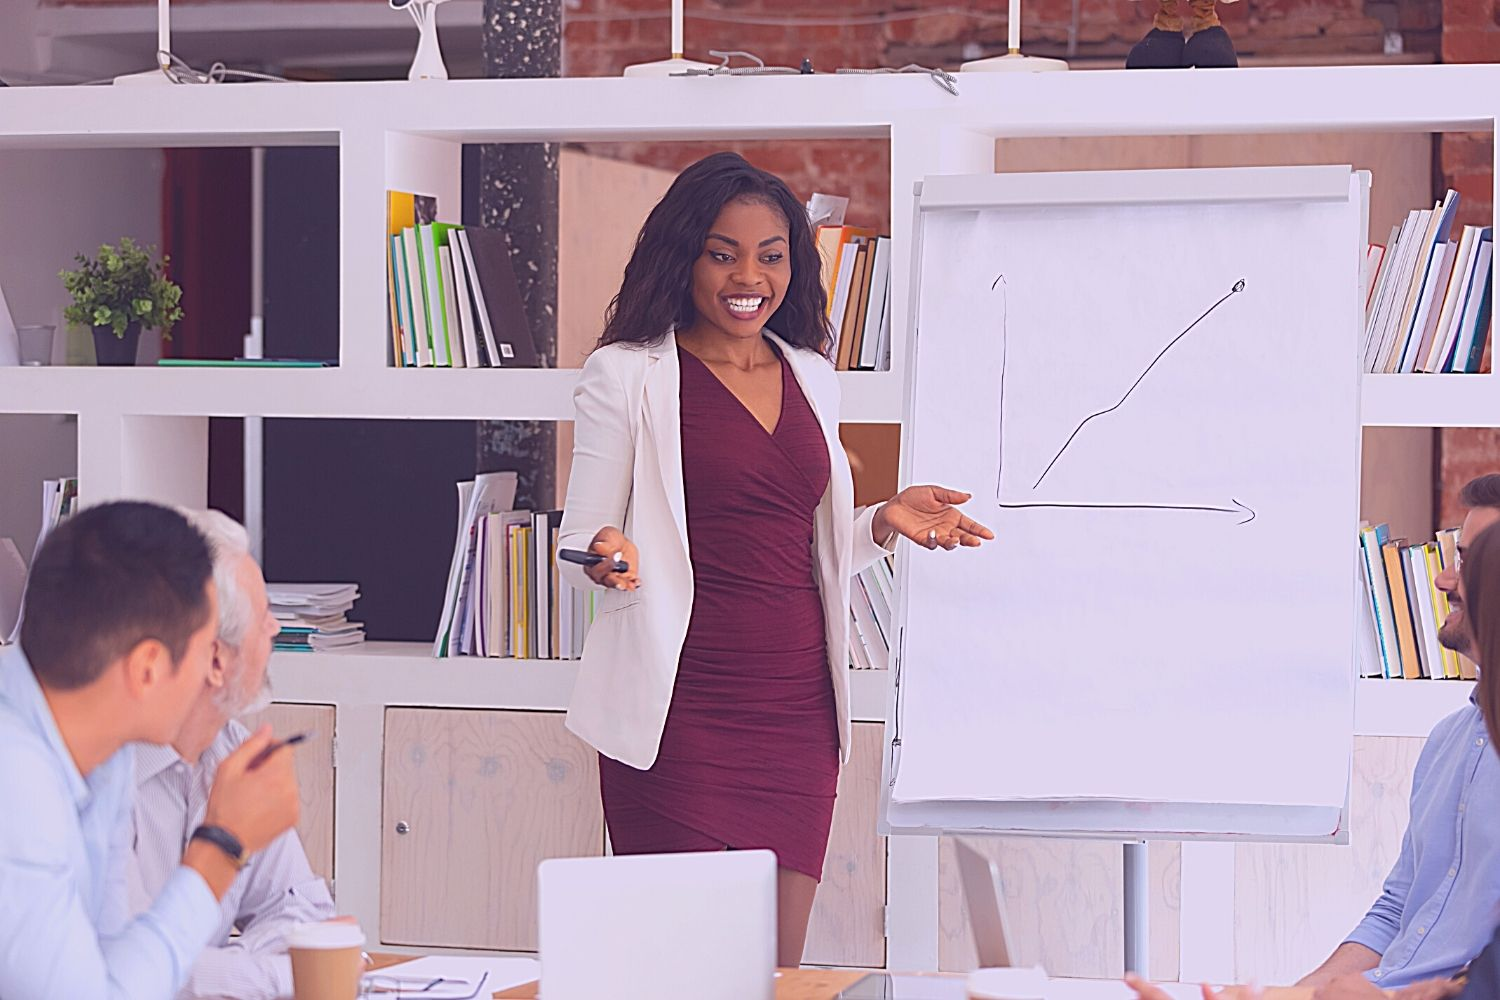 10 Most Important Skills For A Sales Trainer To Have